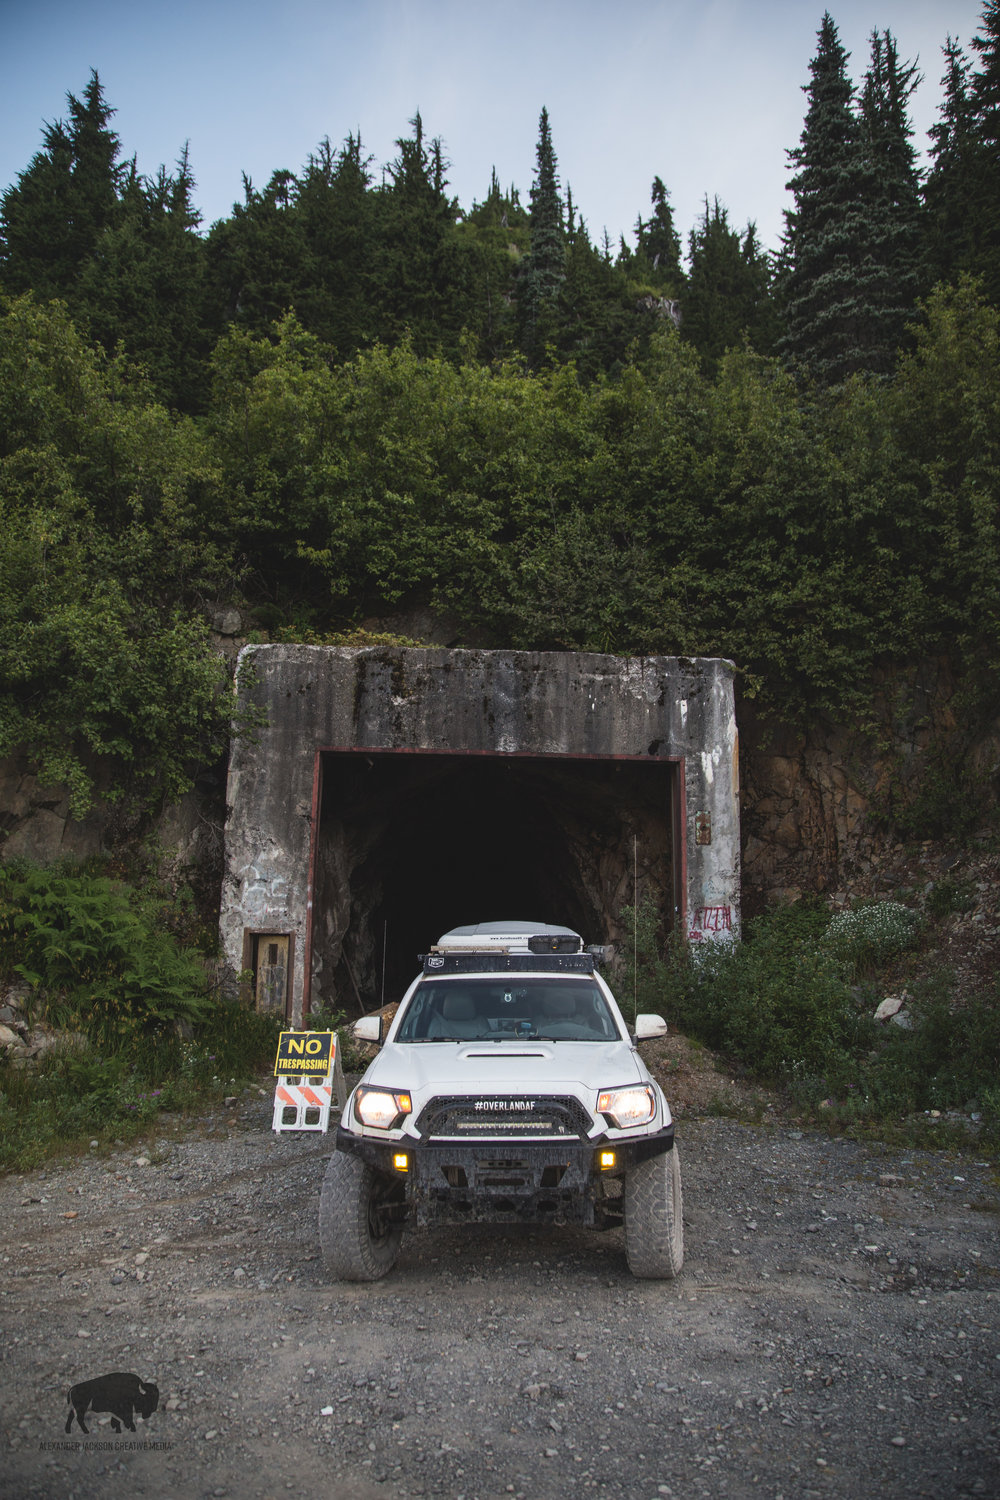 This tunnel used to go through which would allow mining traffic to pass through during the winter because the road ran through an avalanche path.